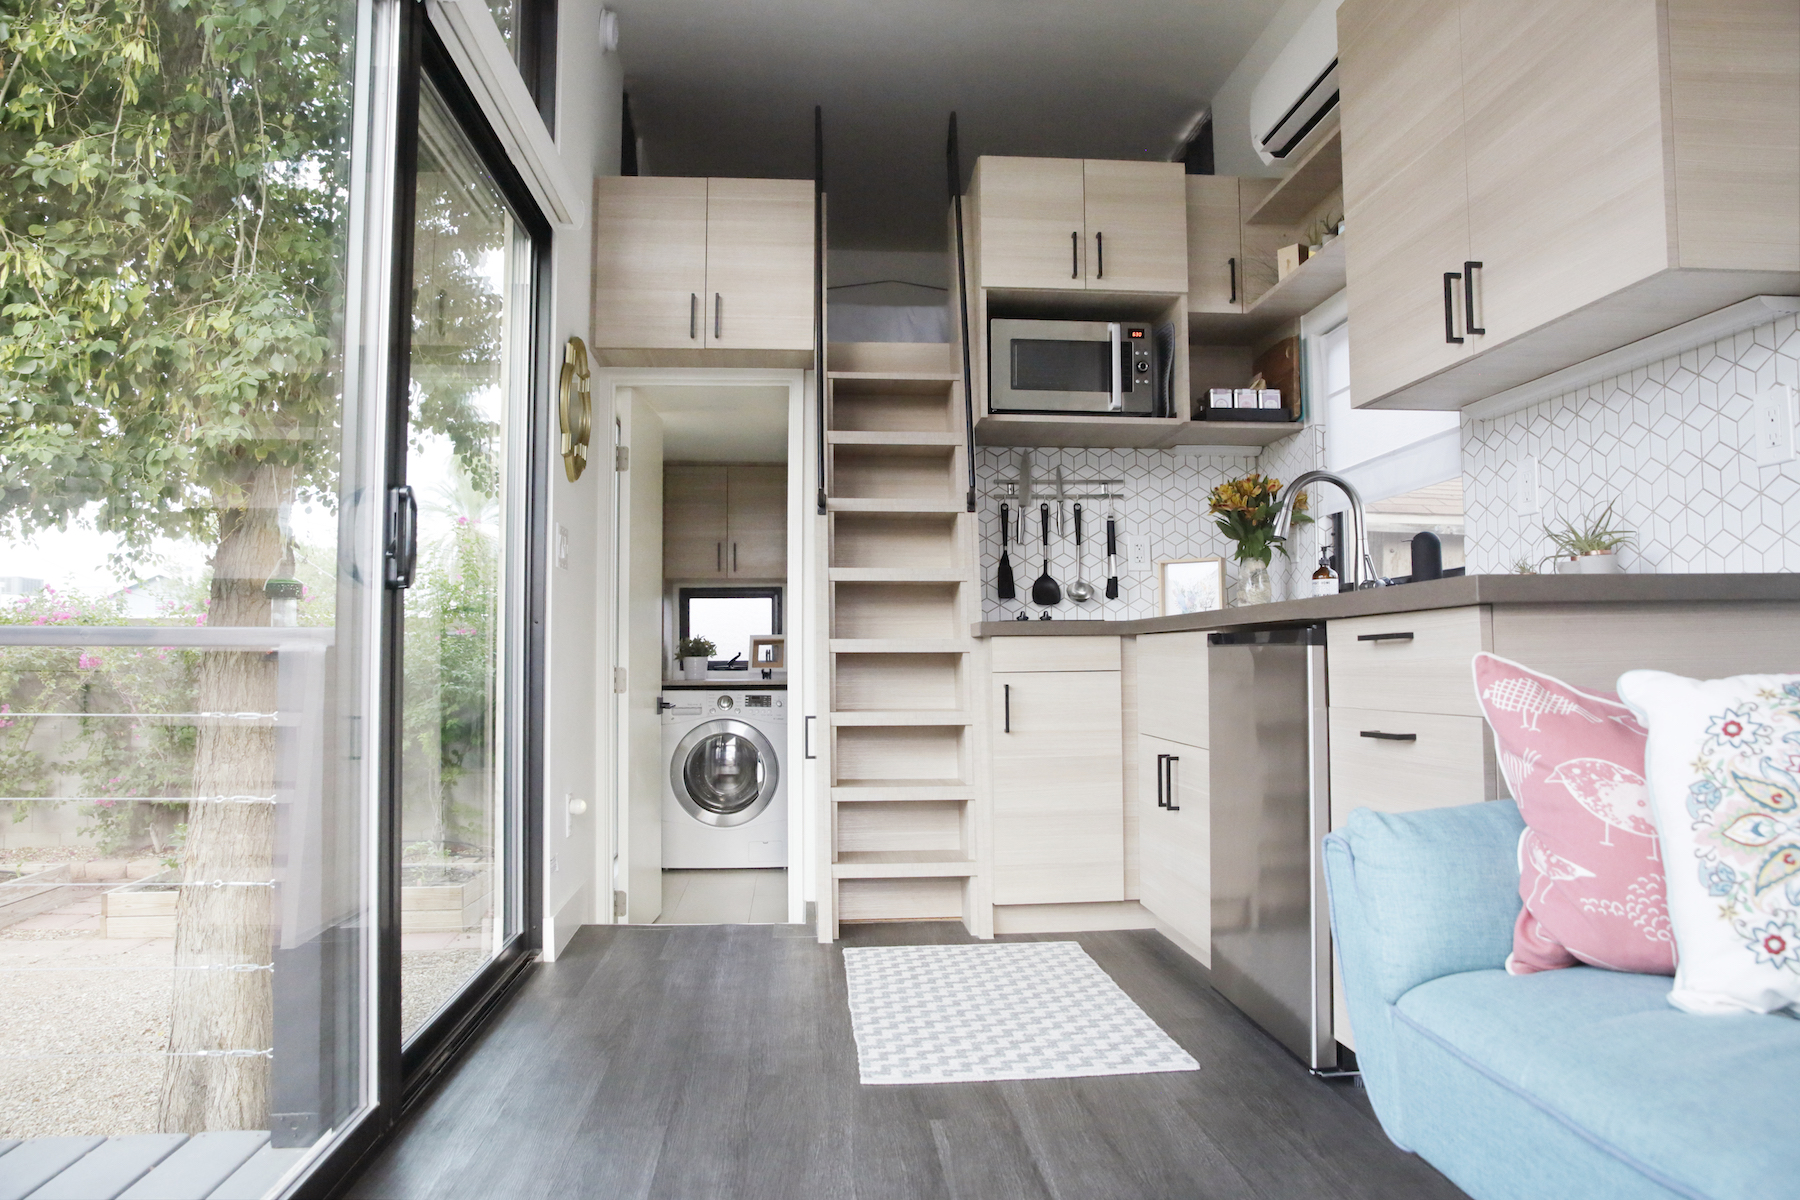 Space-Saving Decor Ideas from Inspiring Tiny Homes | Real Simple